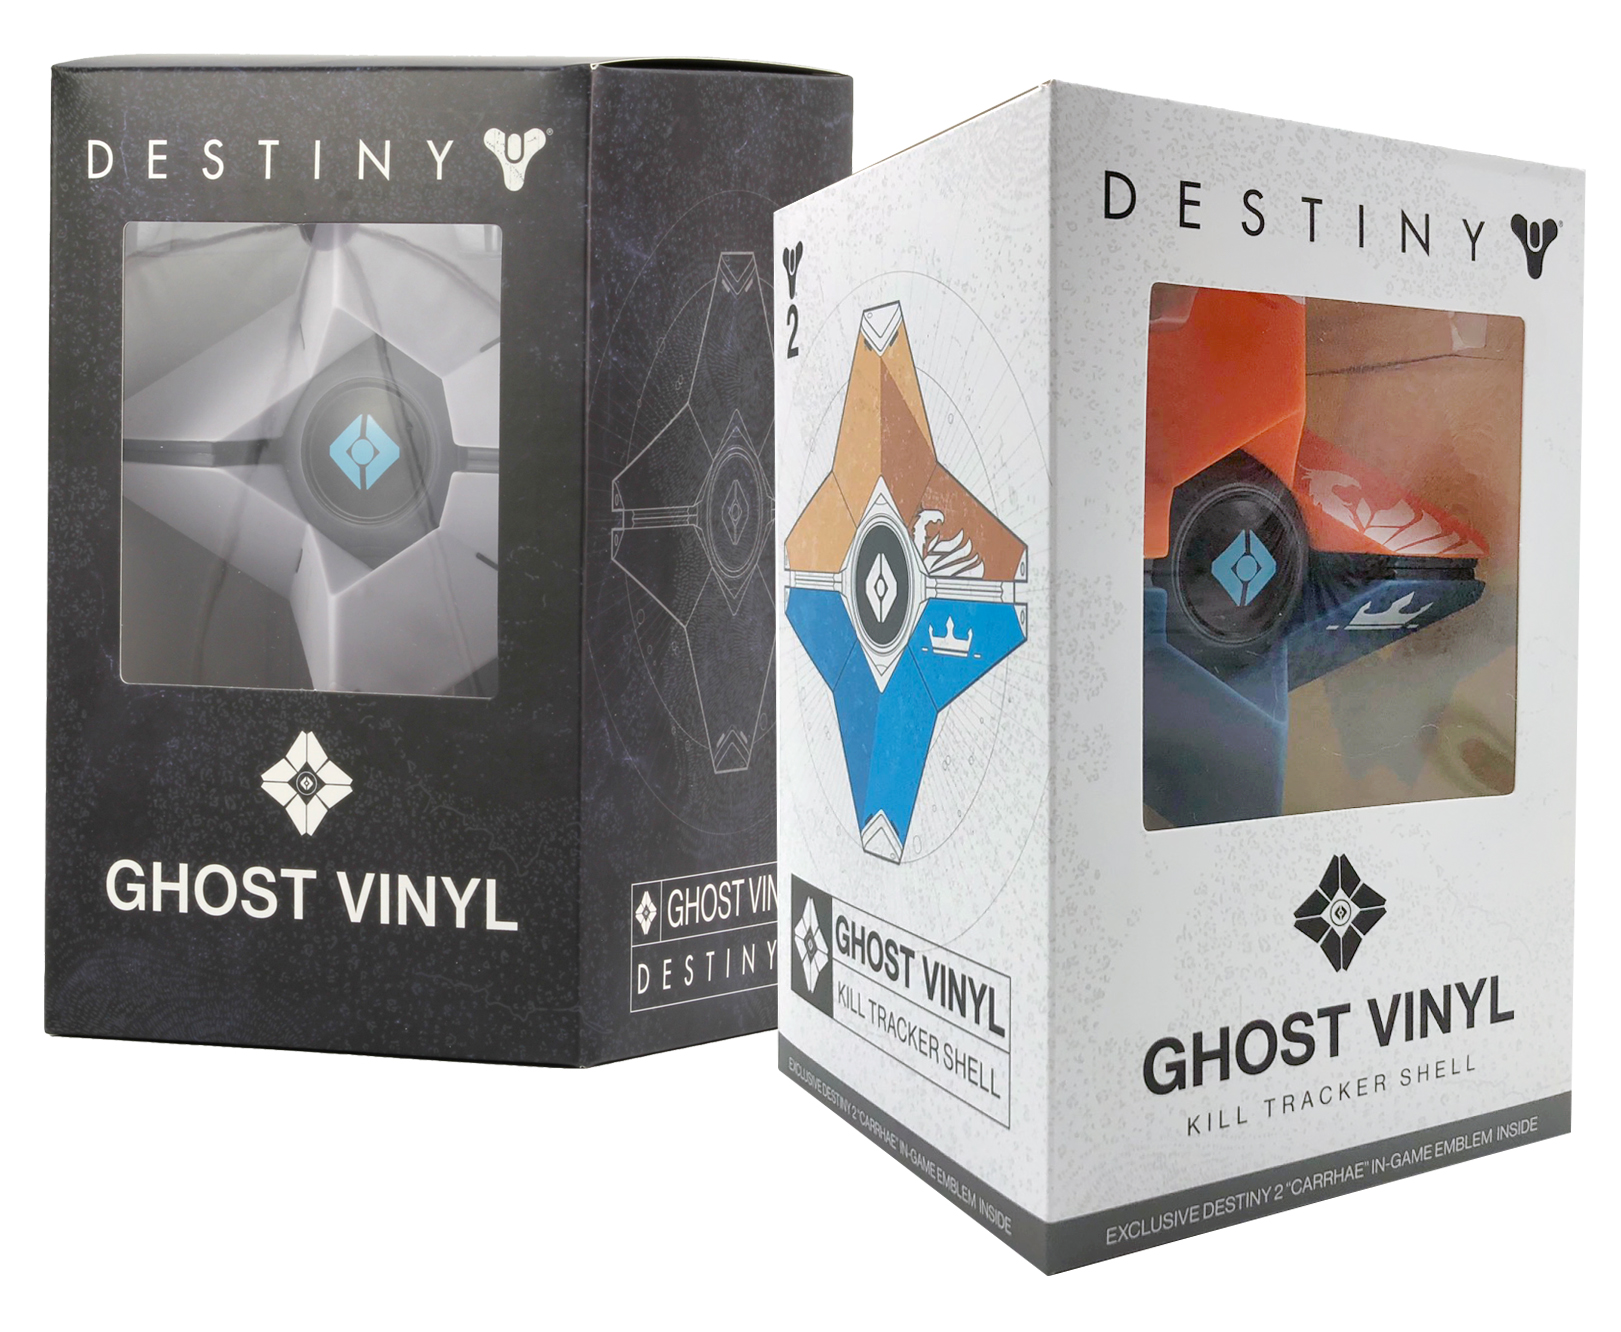 Destiny 2 Ghost Vinyl Packaging   Concept created for vendor in Adobe Photoshop.